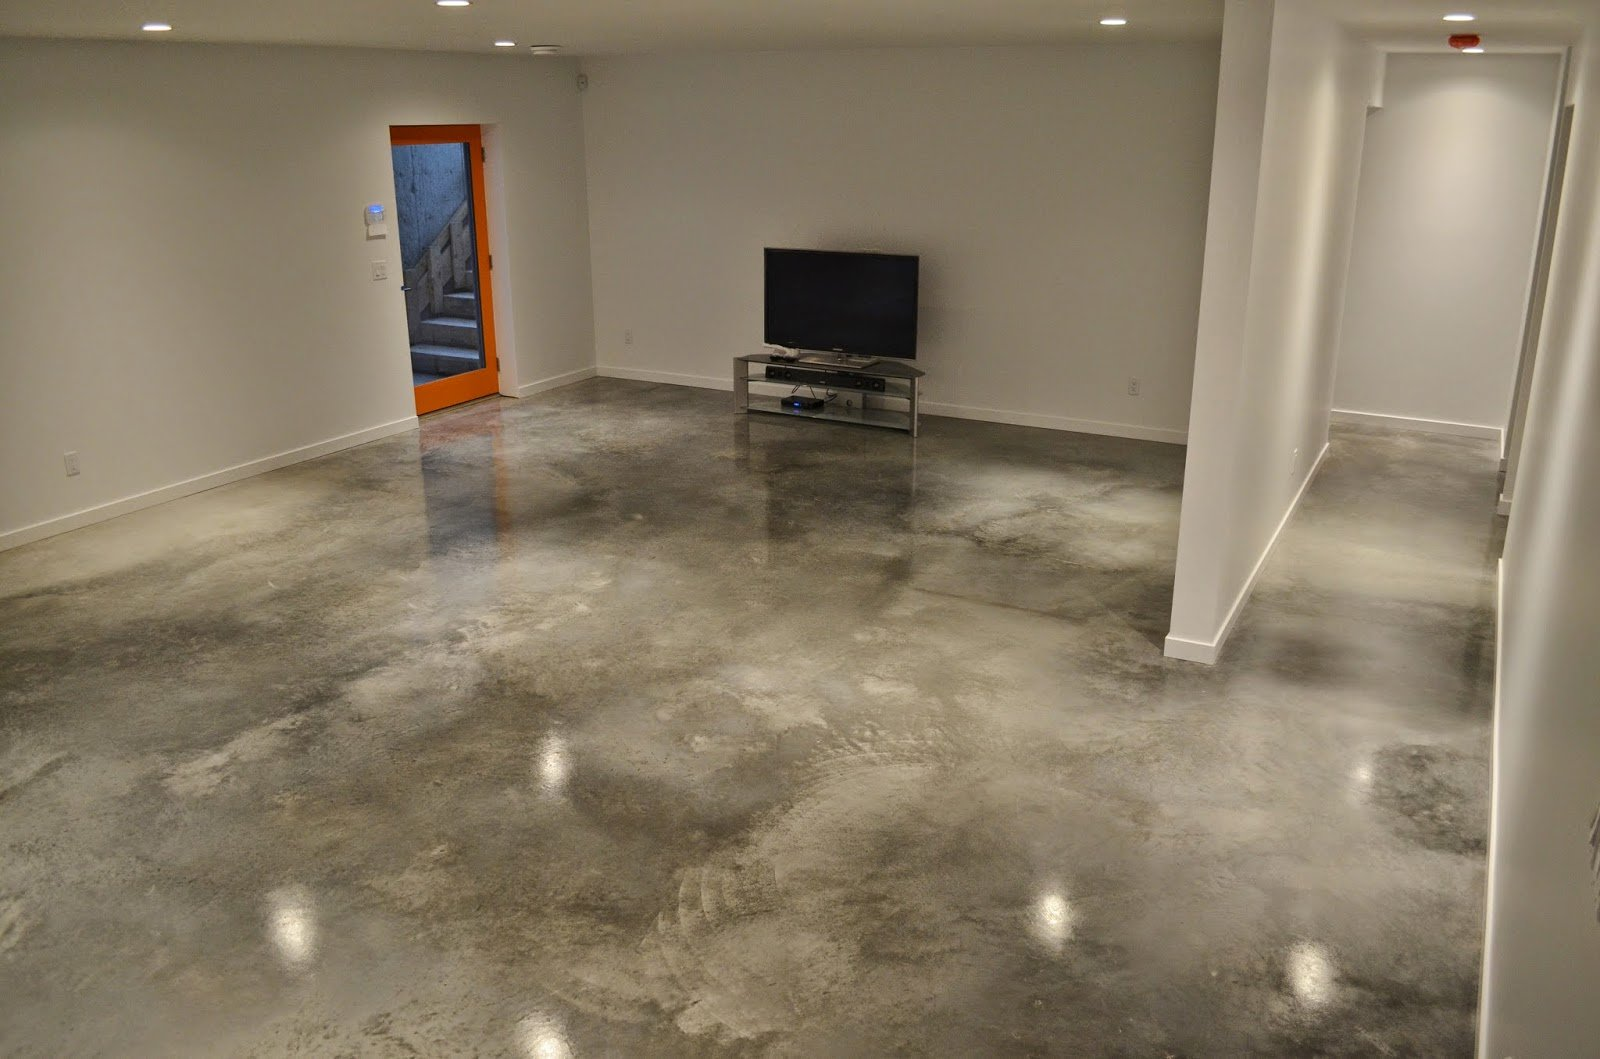 MODE-CONCRETE-Cool-And-Modern-Concrete-Floors-By-MODE